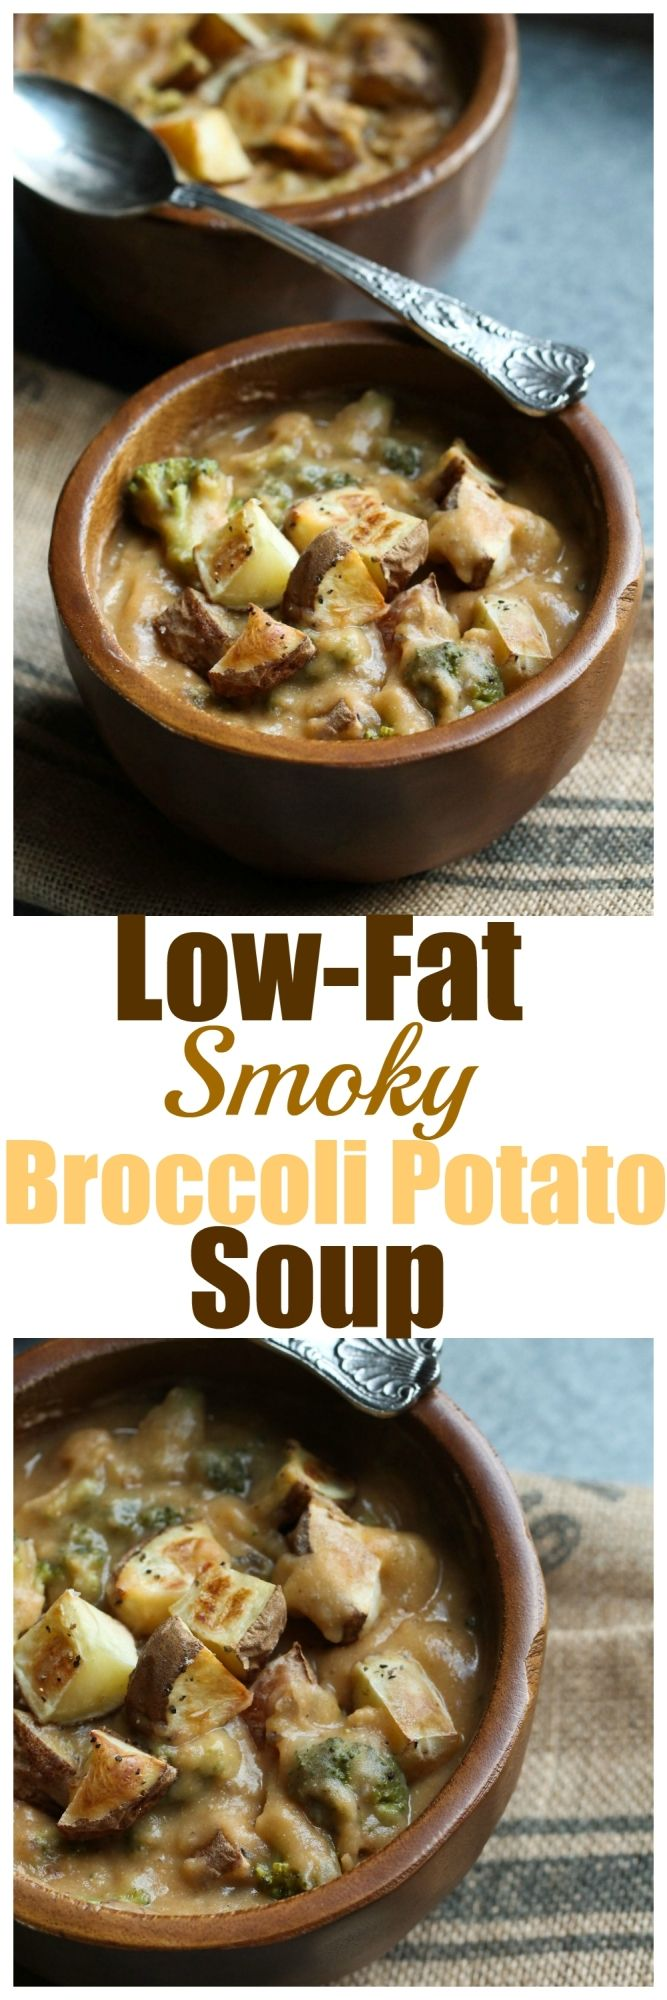 Low Fat Smoky Broccoli Potato Soup